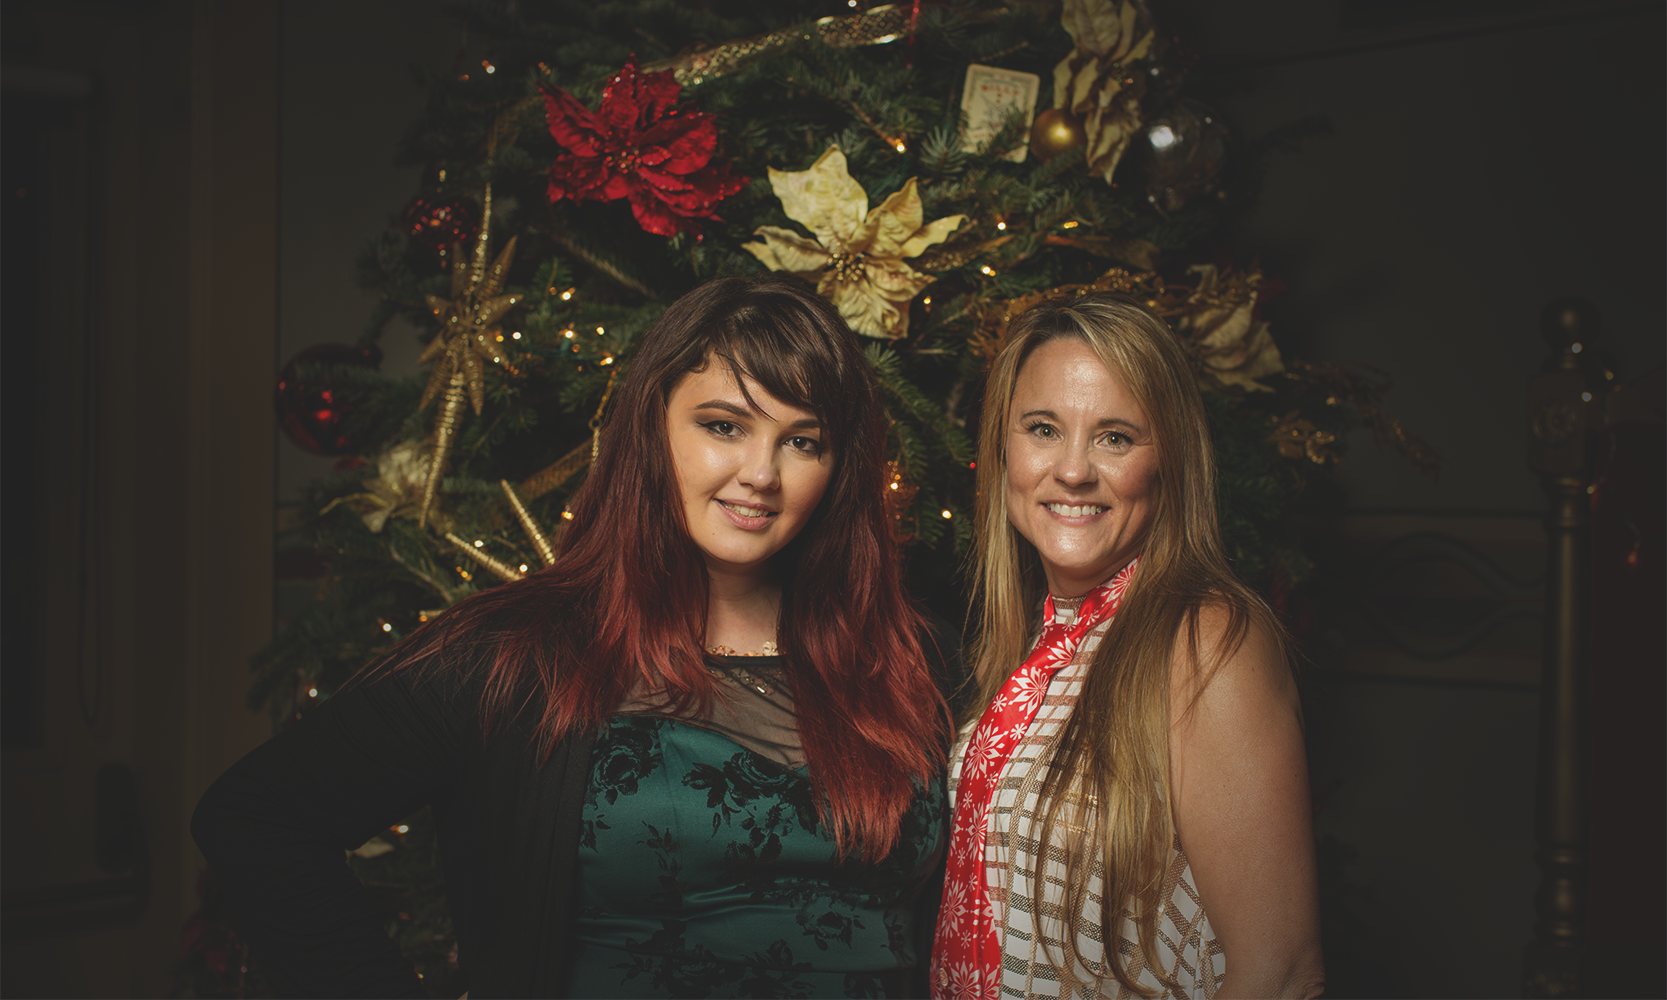 epproperties-vancouver-washington-xmas-party-photolga37.png